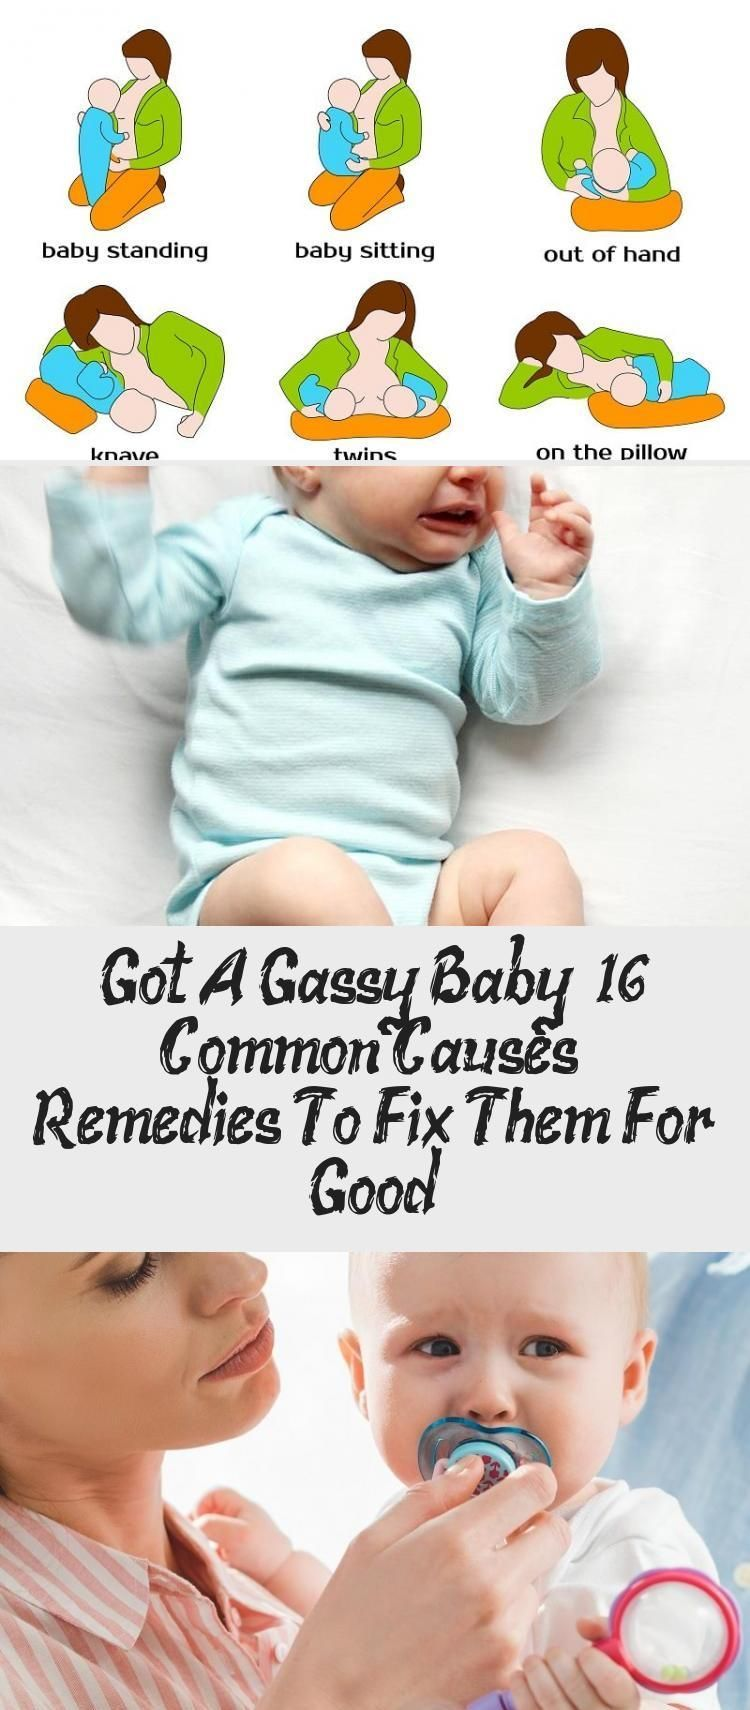 Do you have a Gassy baby? 16 common causes and remedies to solve them forever - health and fitness d...